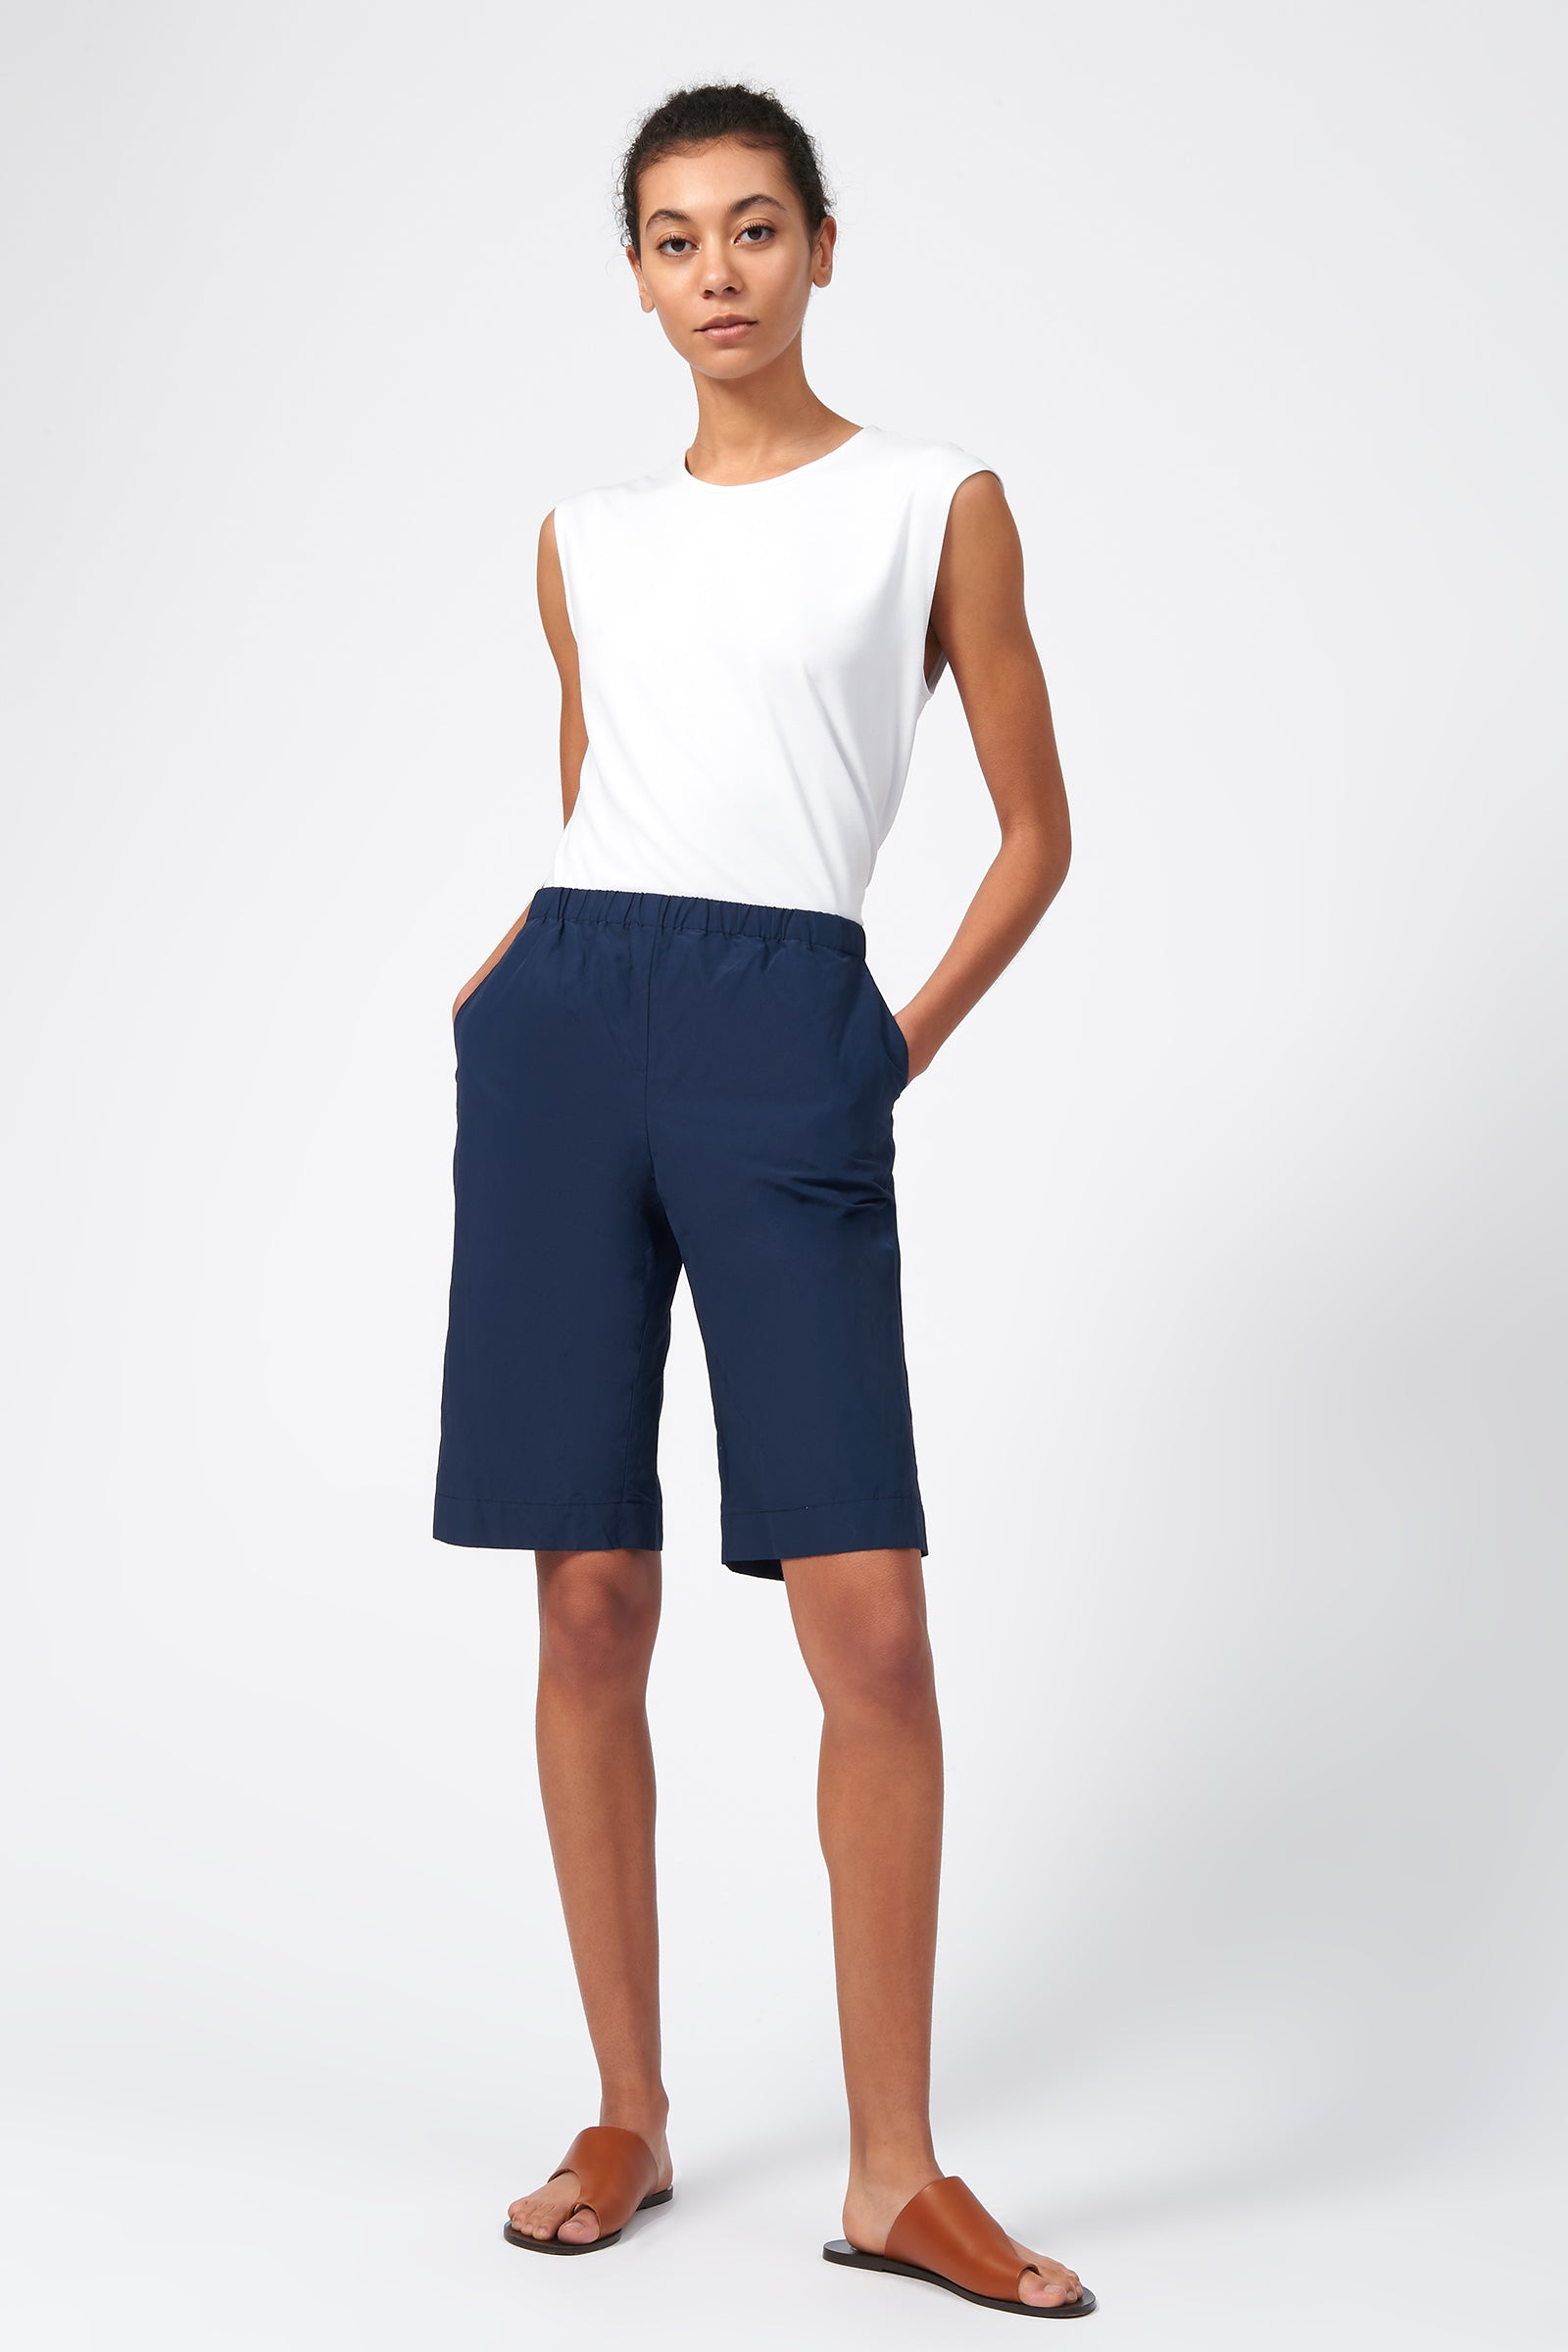 Kal Rieman Cotton Nylon Bermuda in Navy on Model Full Front View